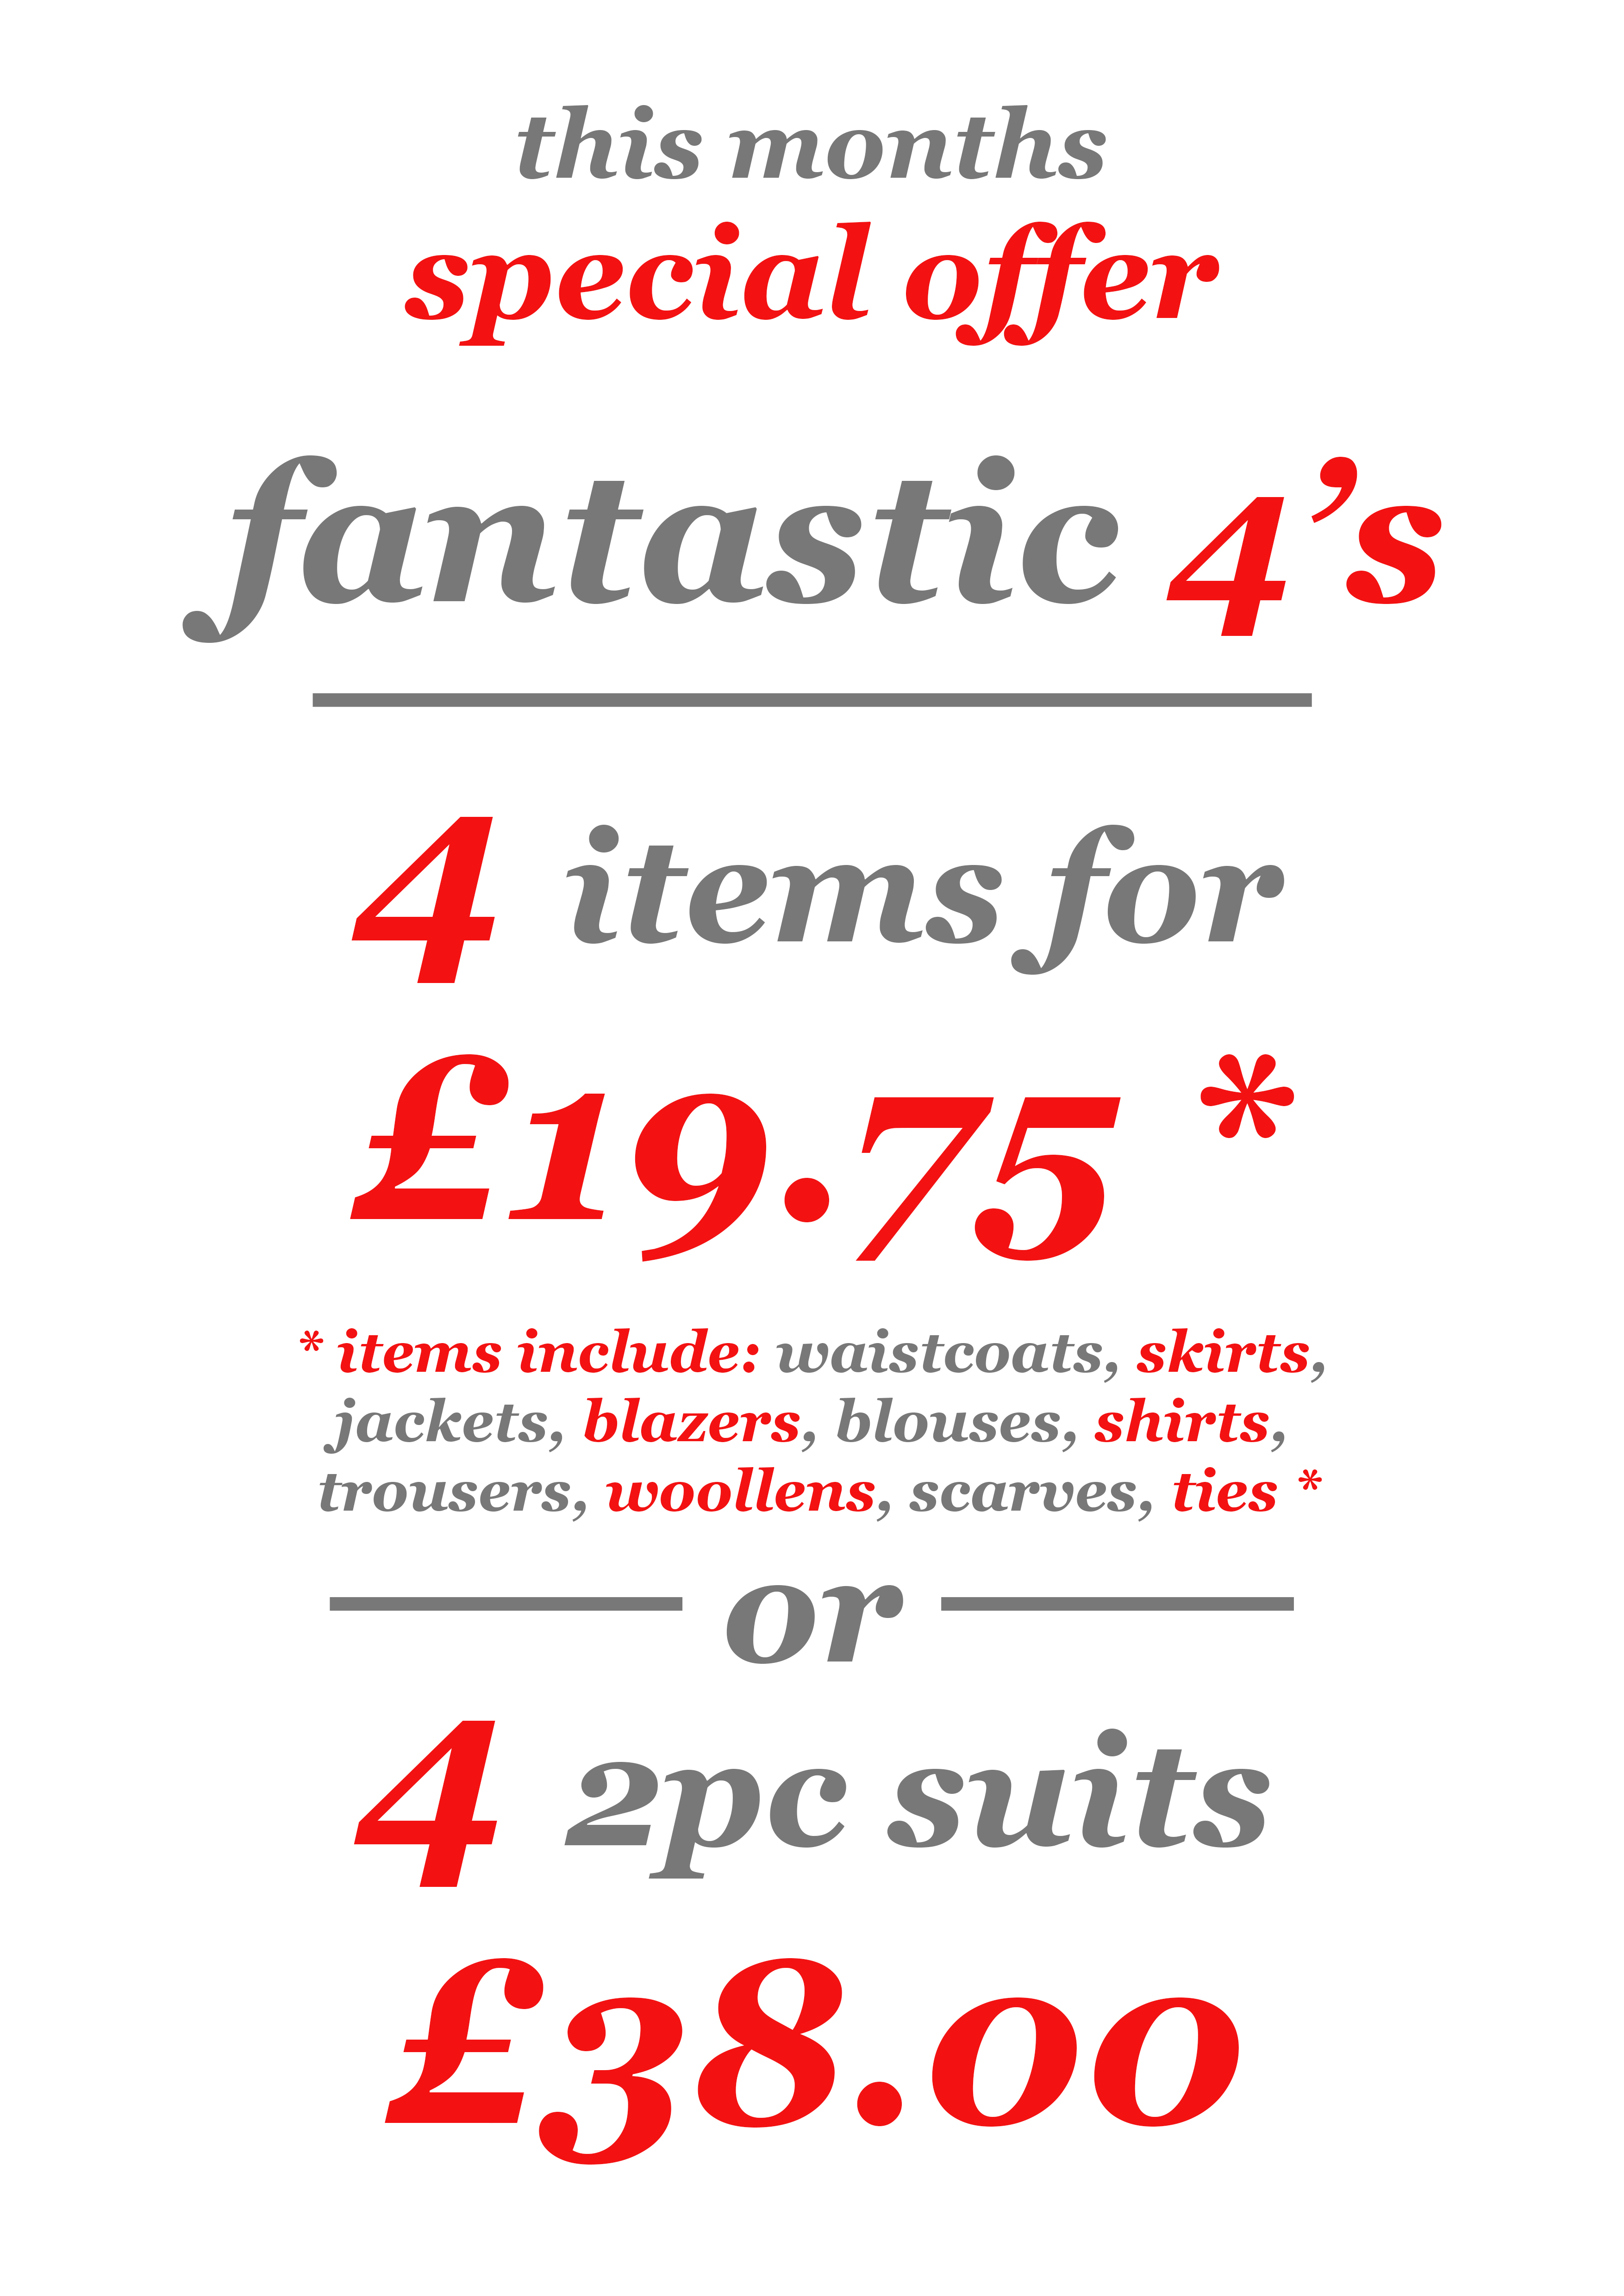 Fantastic 4's - Special Offers - 4 Items - Sunshine Dry Cleaners